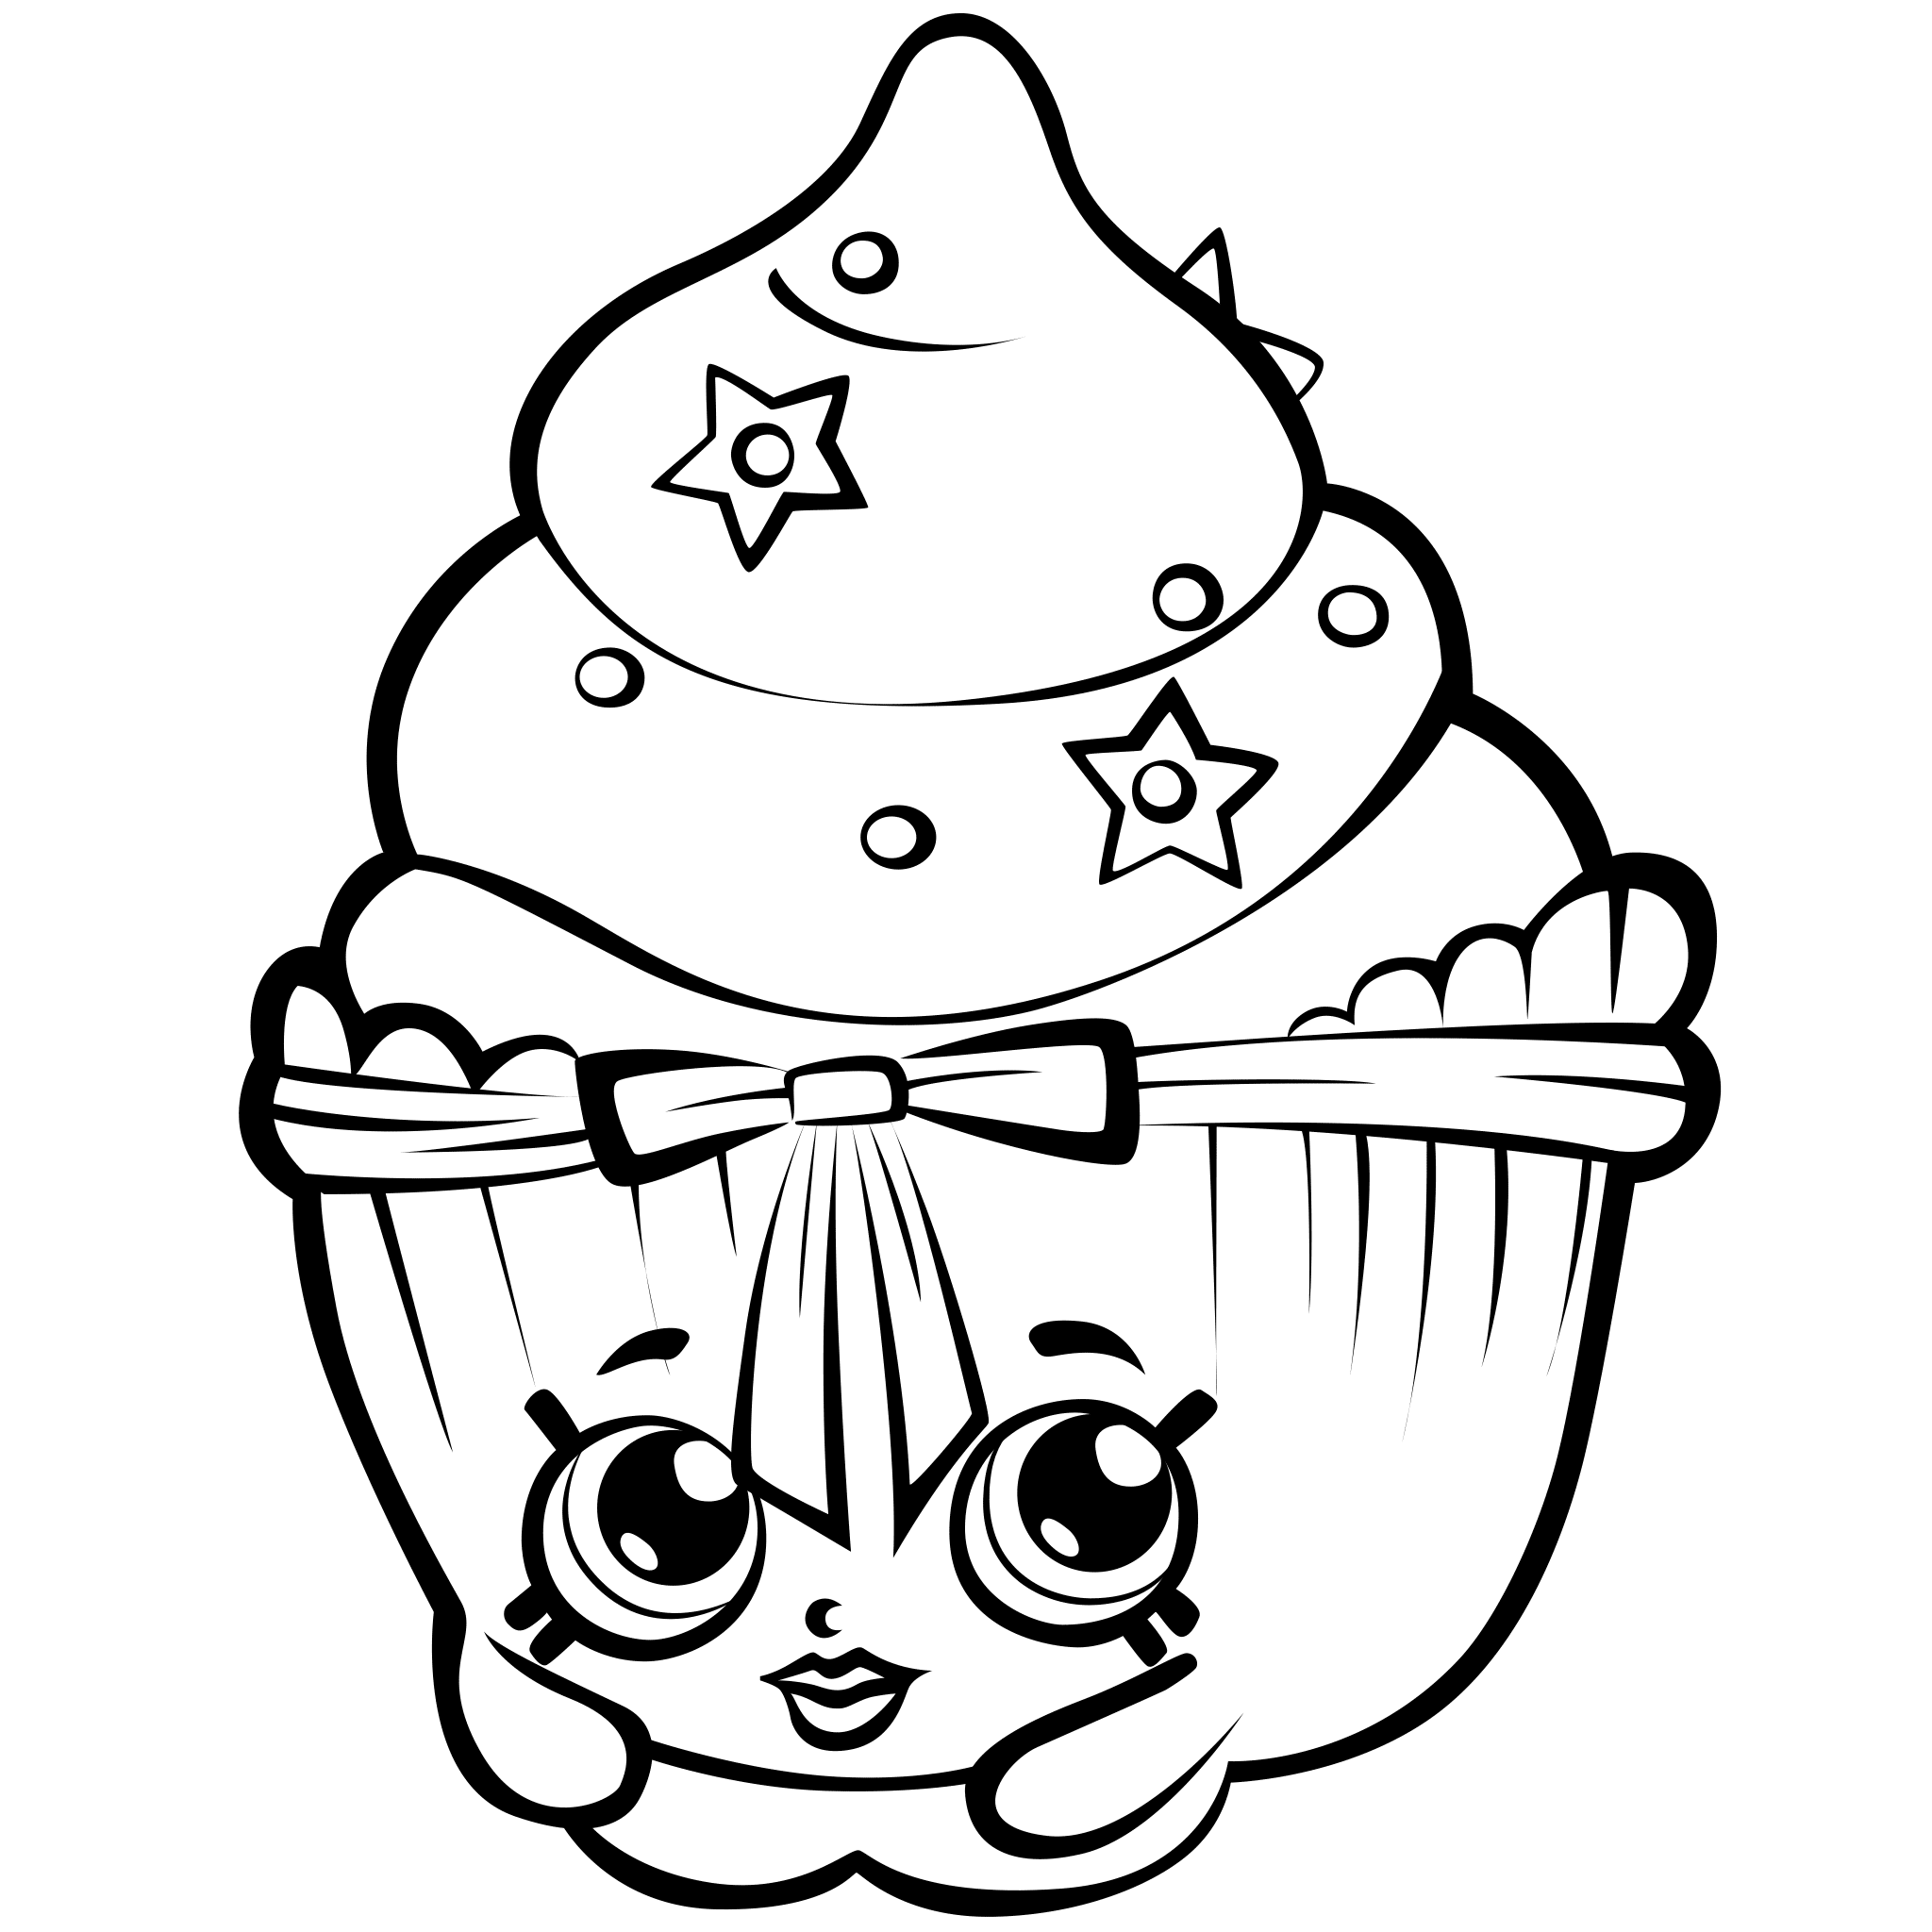 shopkins coloring pages wishes come - photo#18